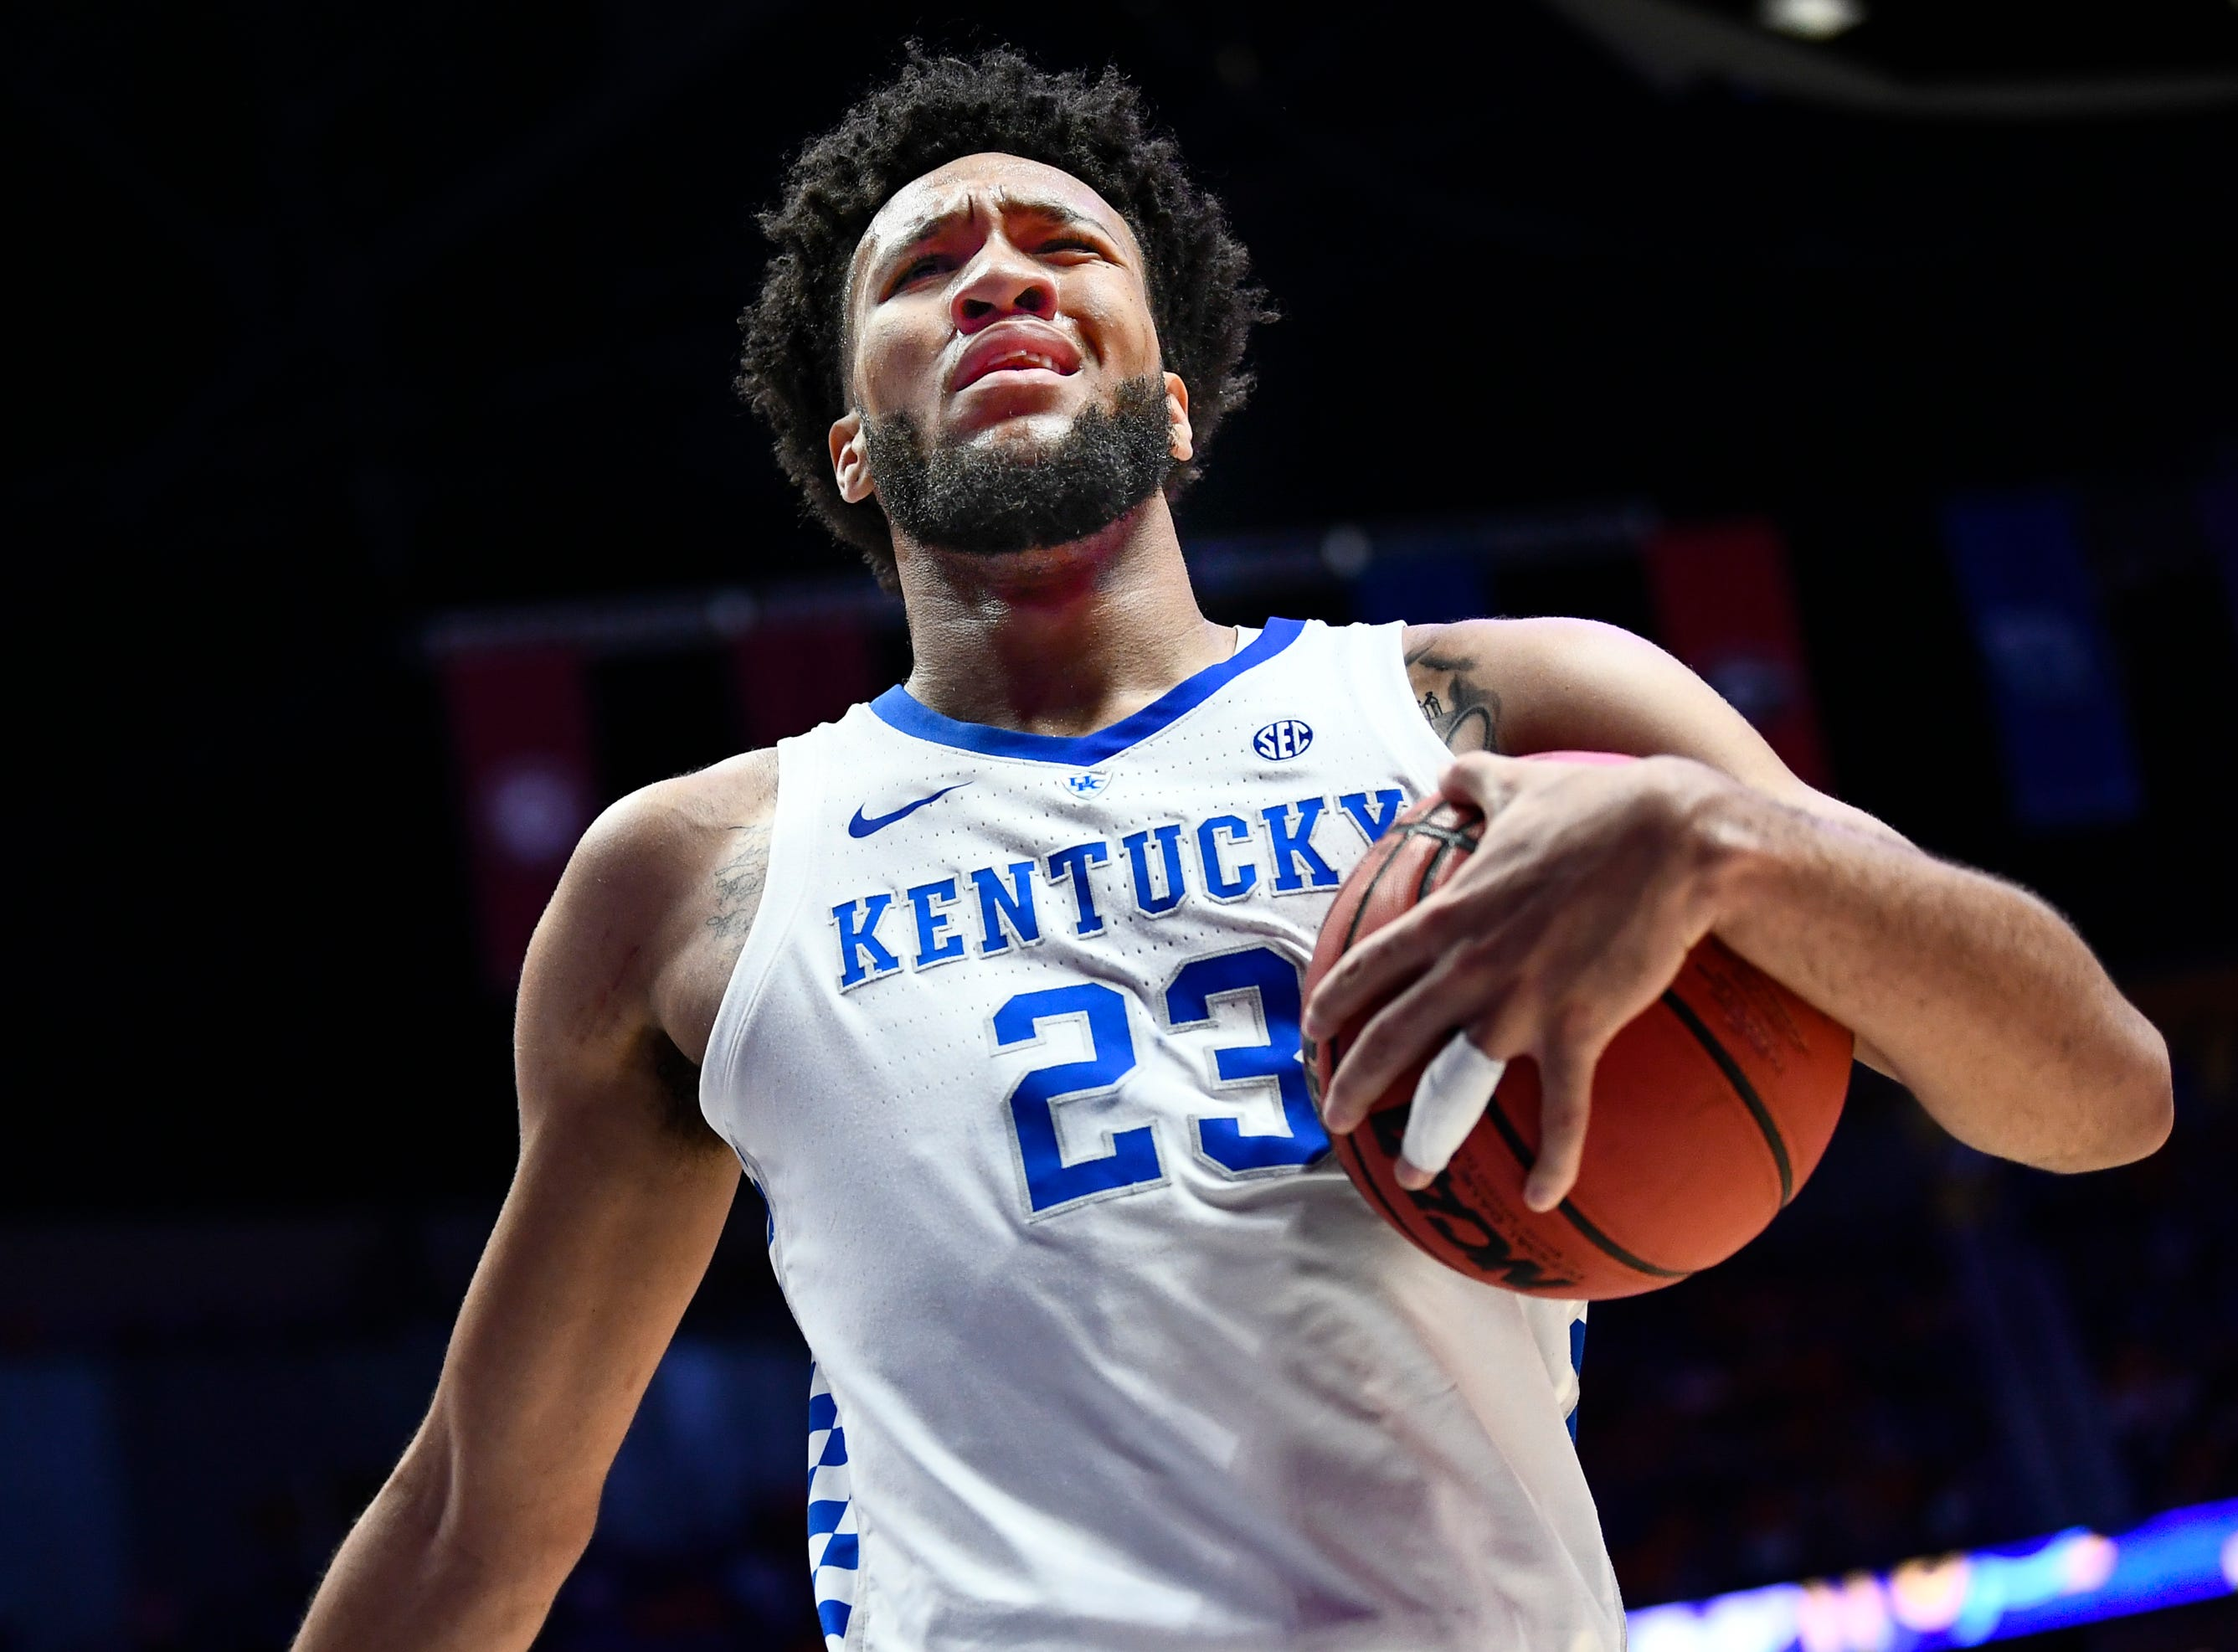 Kentucky forward EJ Montgomery (23) reacts to a foul called on Kentucky during the second half of the SEC Men's Basketball Tournament semifinal game against Tennessee at Bridgestone Arena in Nashville, Tenn., Saturday, March 16, 2019.